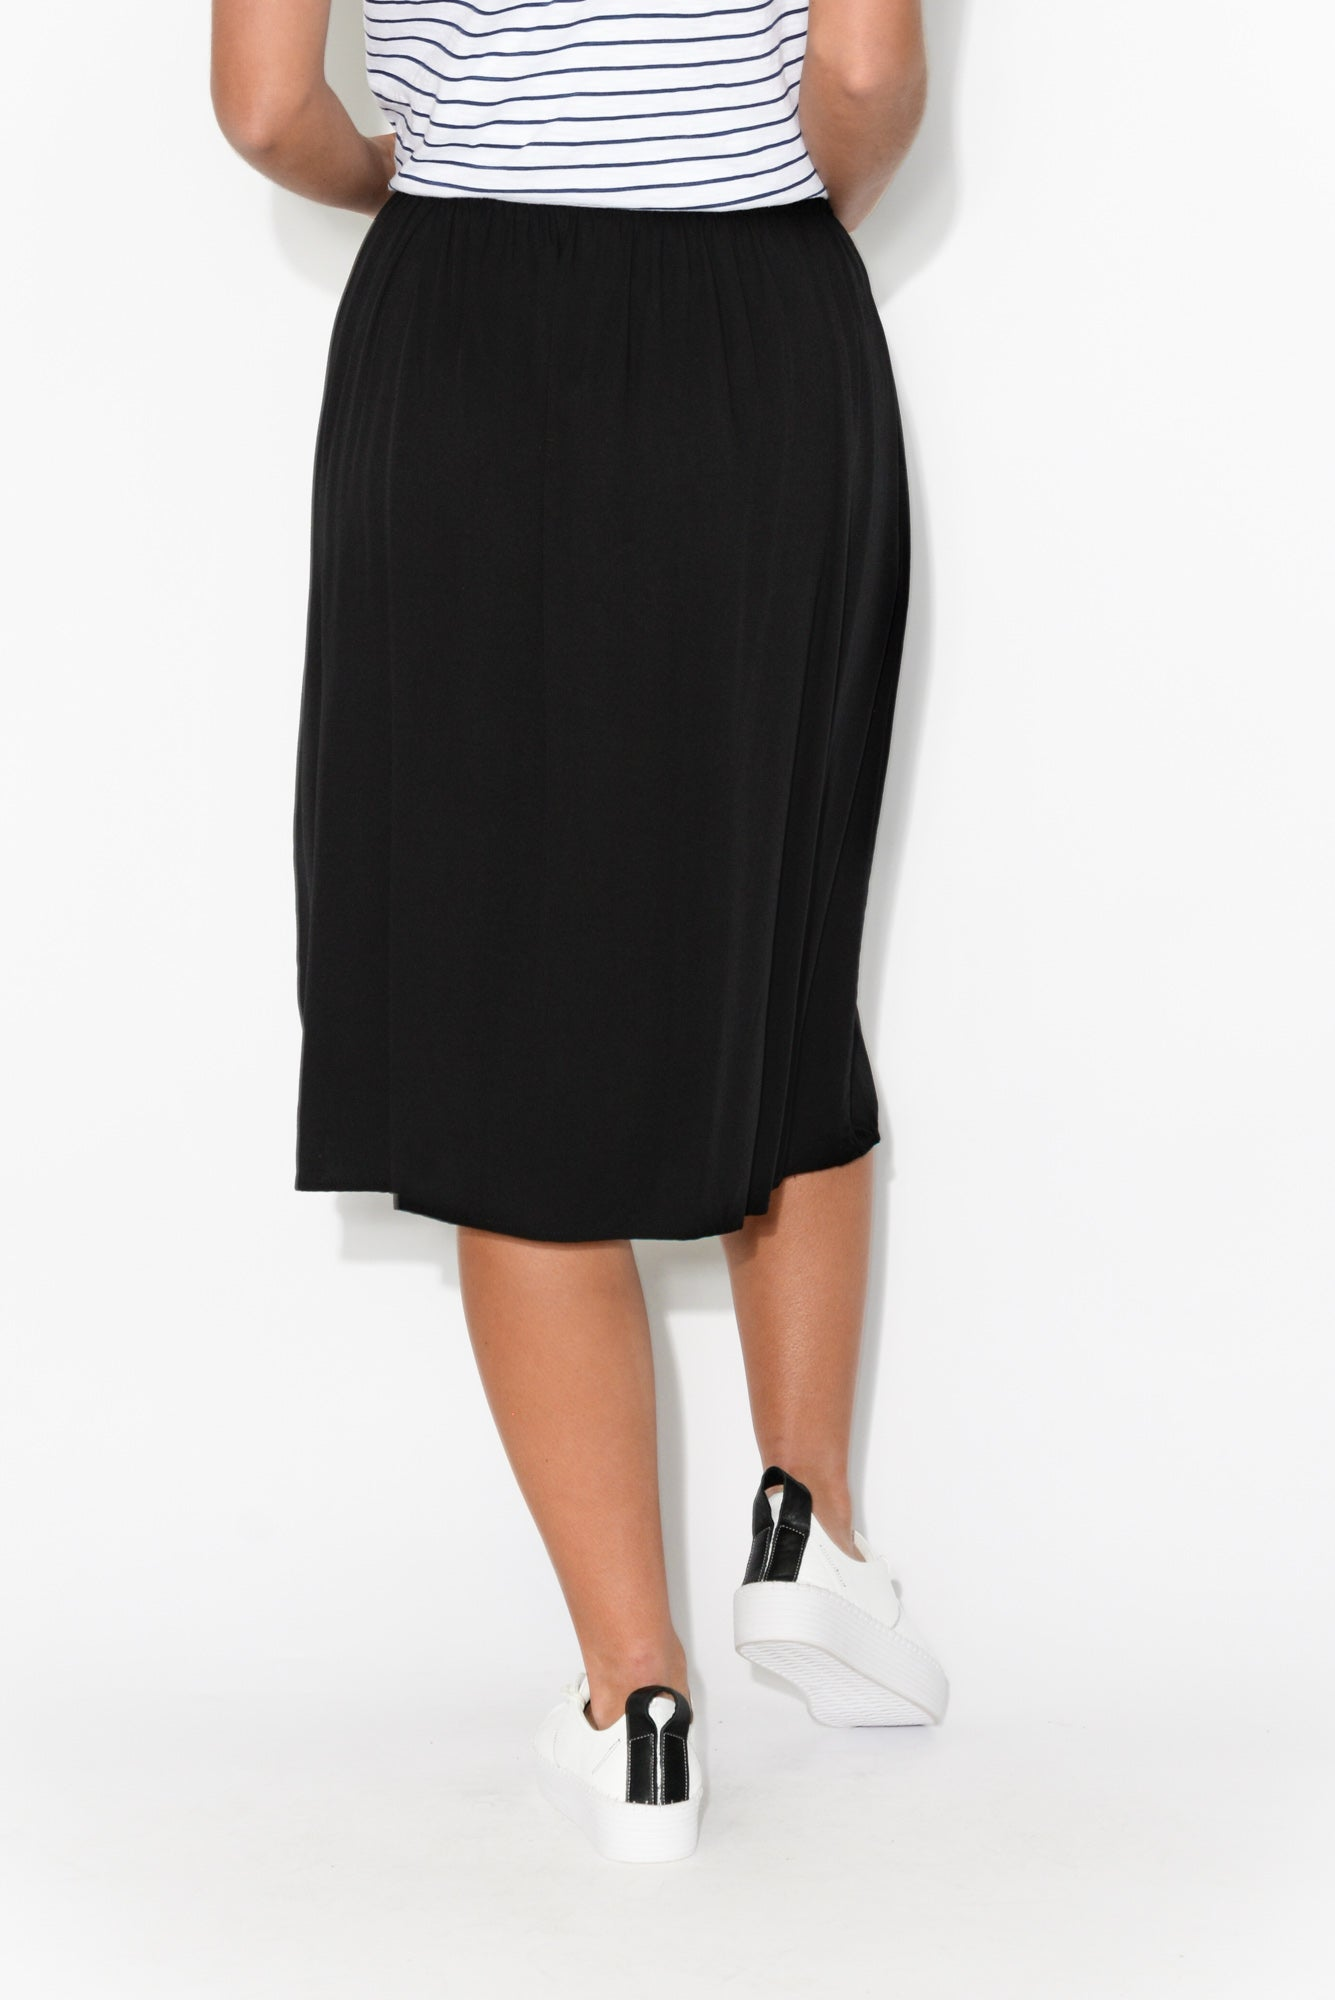 Landon Black Skirt